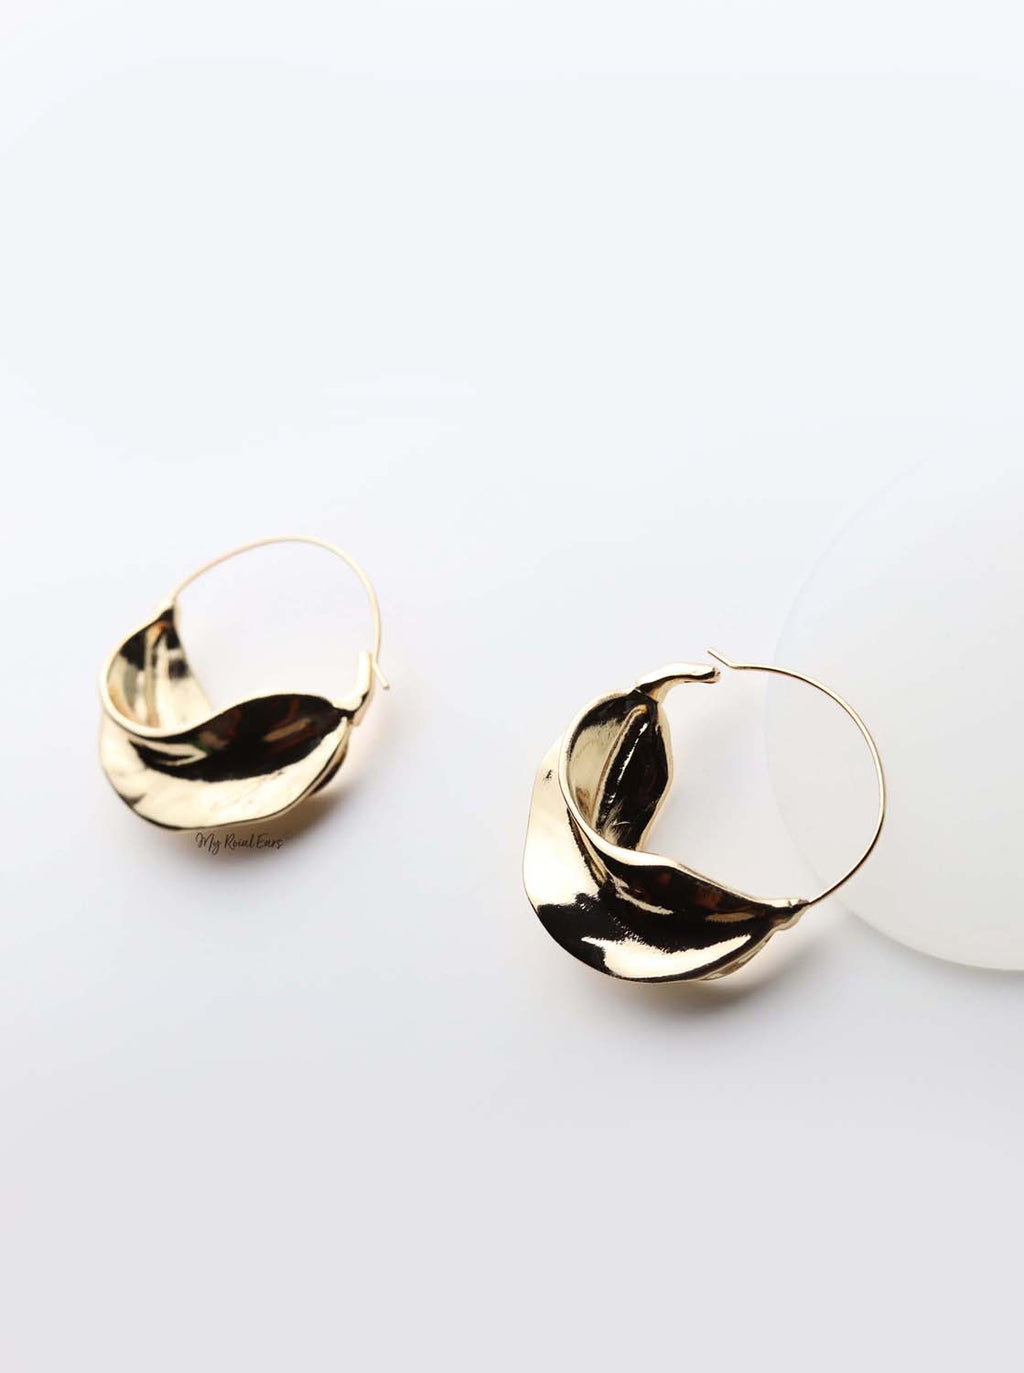 Alcippe- gold plated leaf-inspired hoop earrings - My Roial Ears LTD